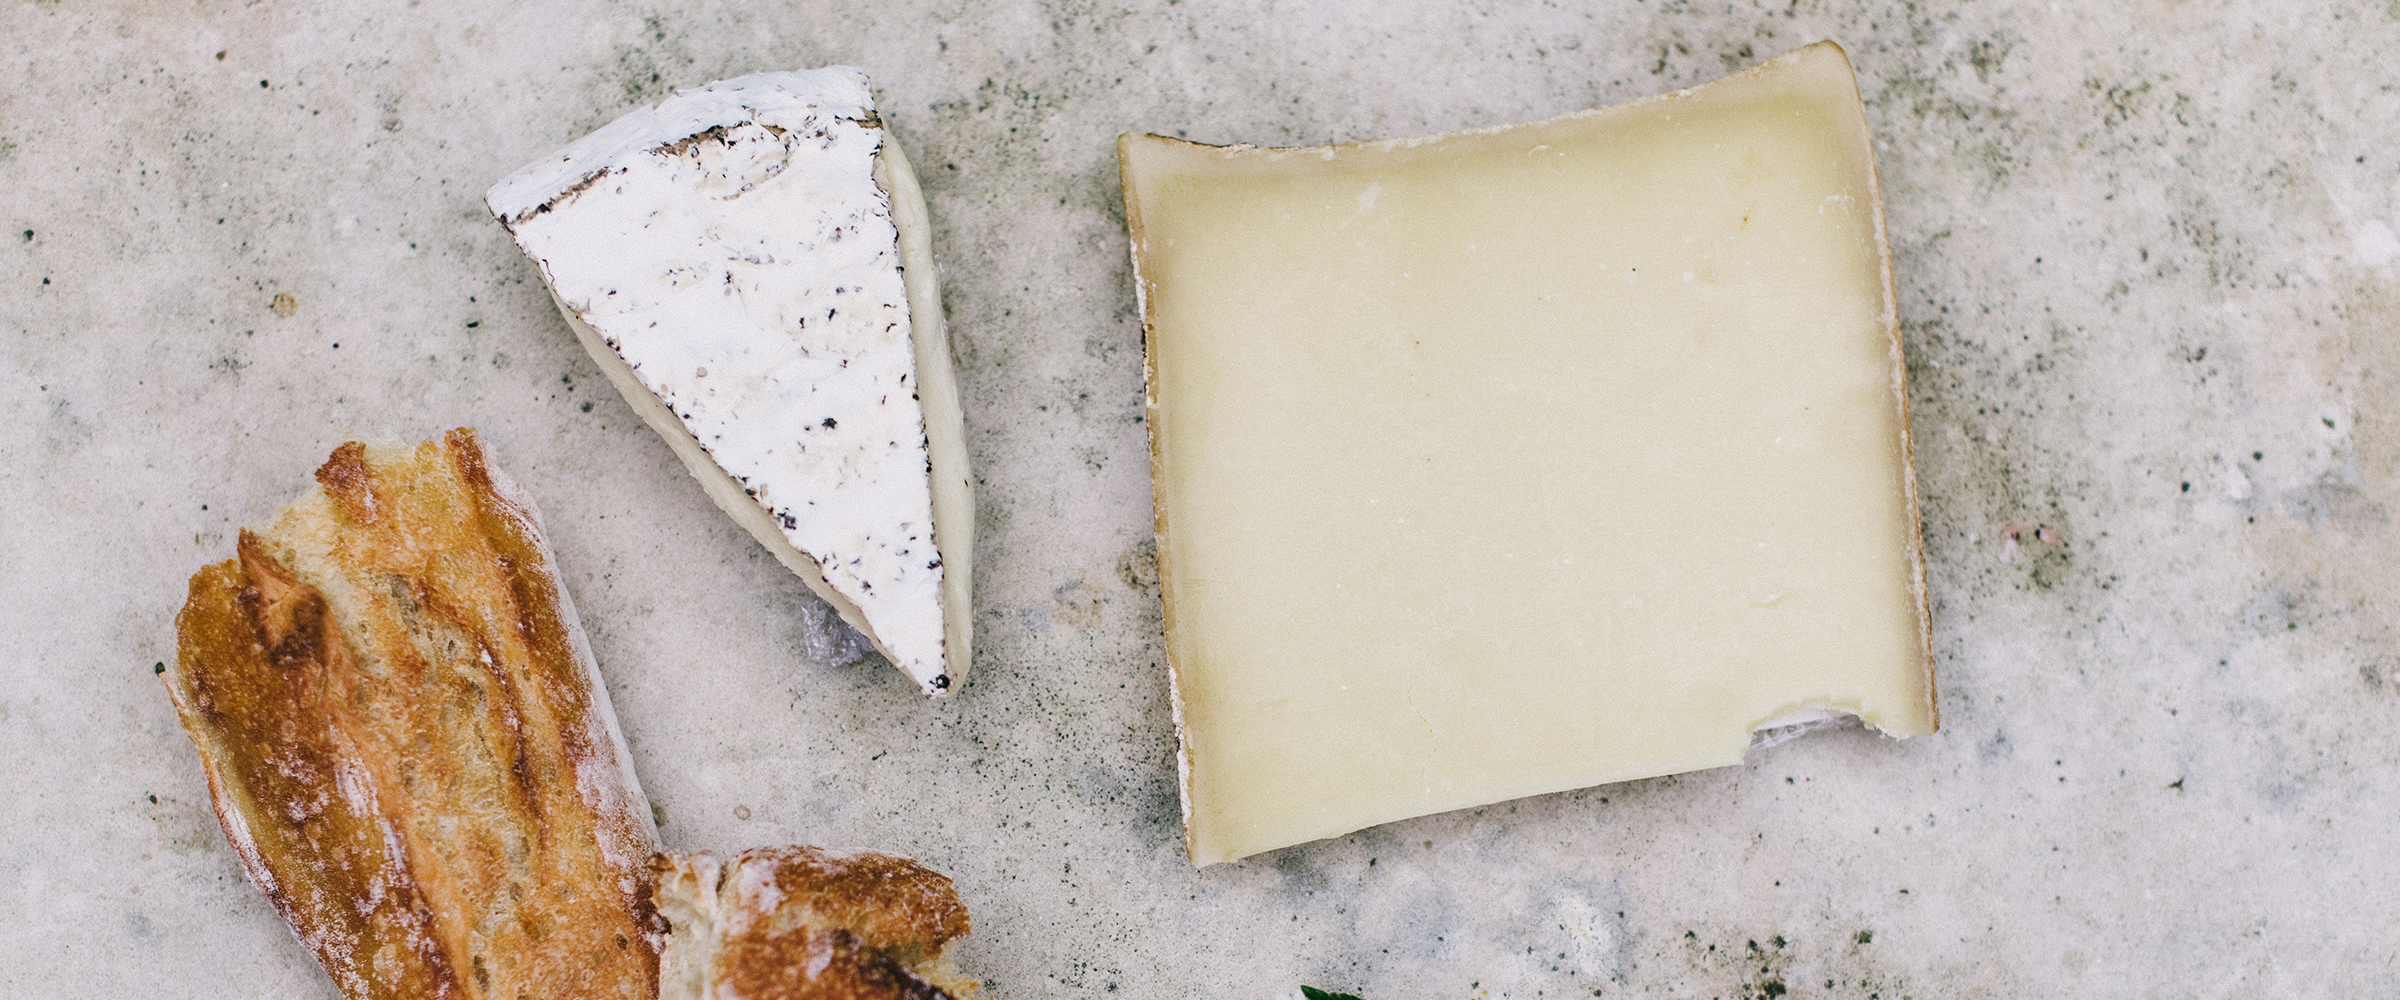 Brighton cheese lovers left feeling Blue after festival fail